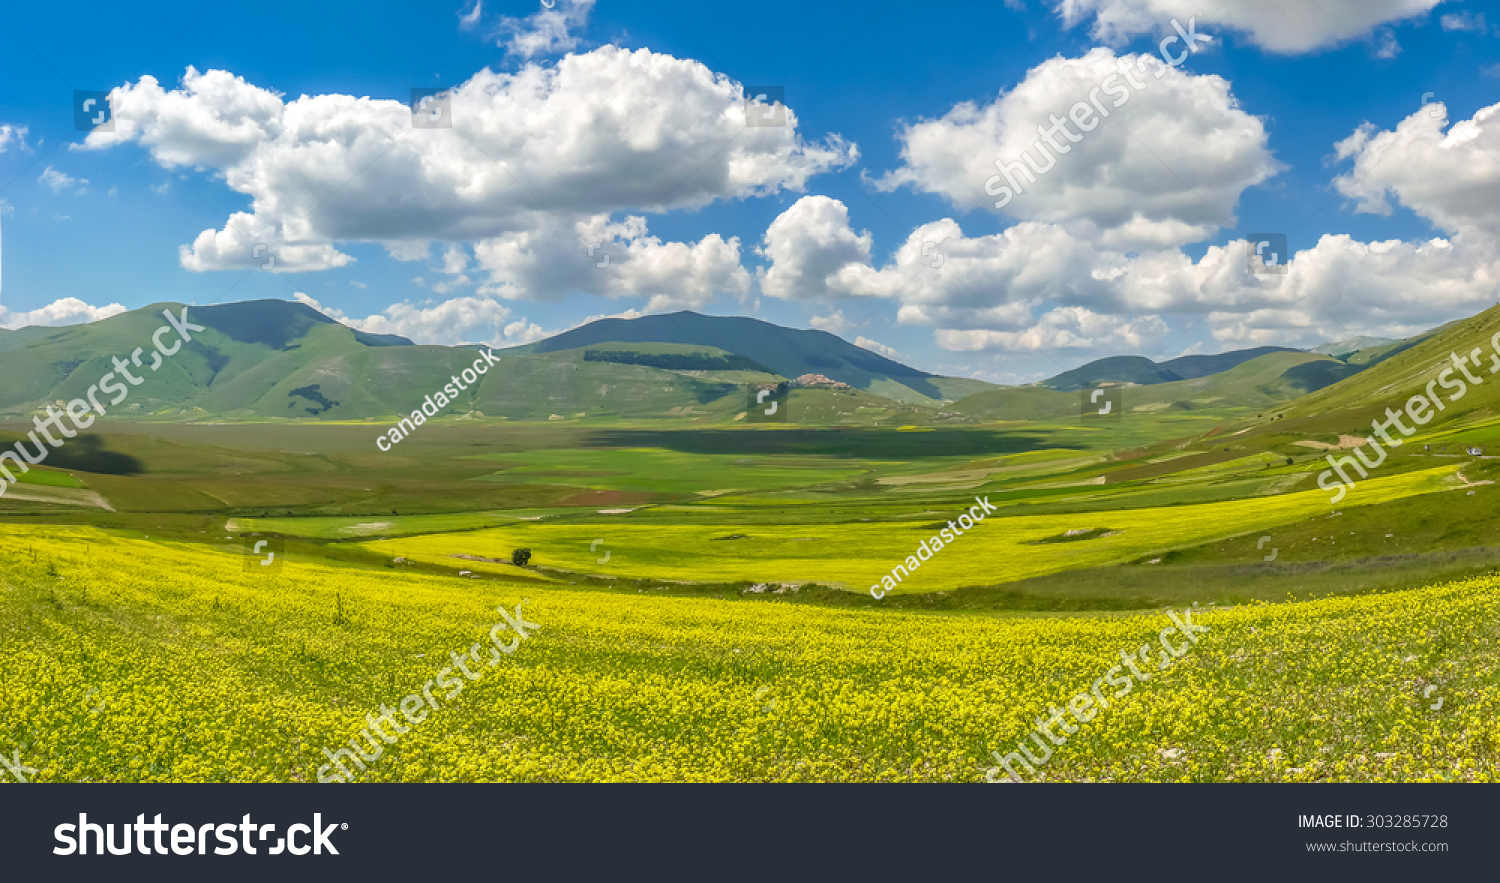 Beautiful summer landscape at Piano Grande Great Plain mountain plateau in the Apennine Mountains Castelluccio di Norcia Umbria Italy